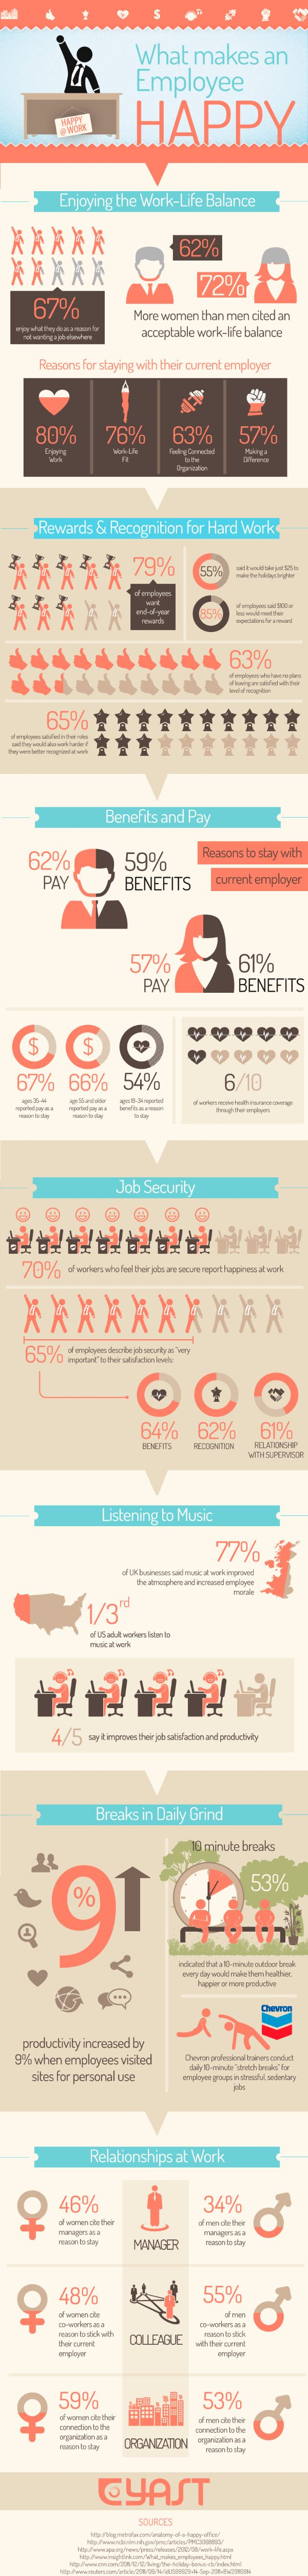 What makes an employee happy, interesting infographic to help you understand how to create a better work environment for your employees.